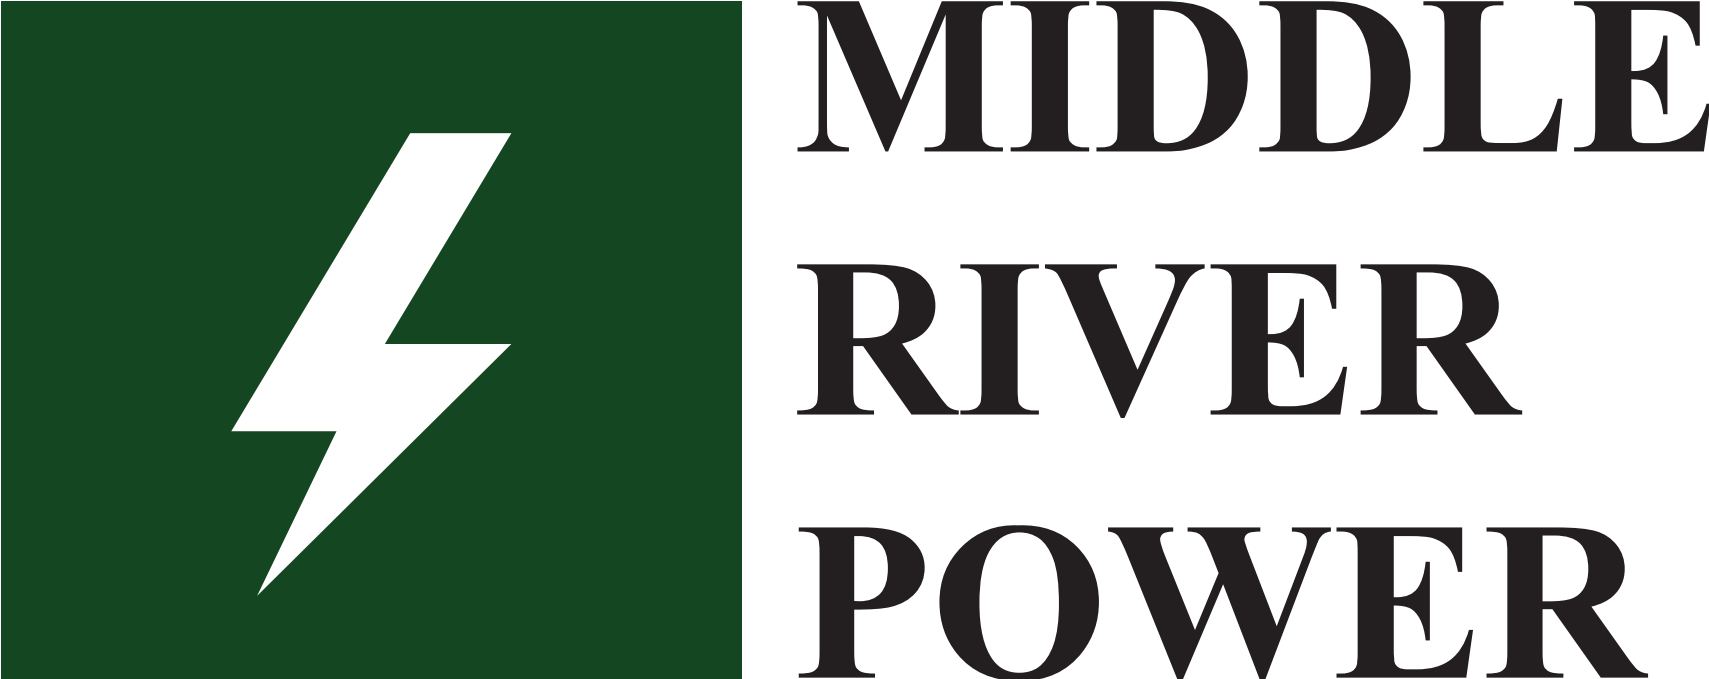 High Desert Solar & Middle River Power